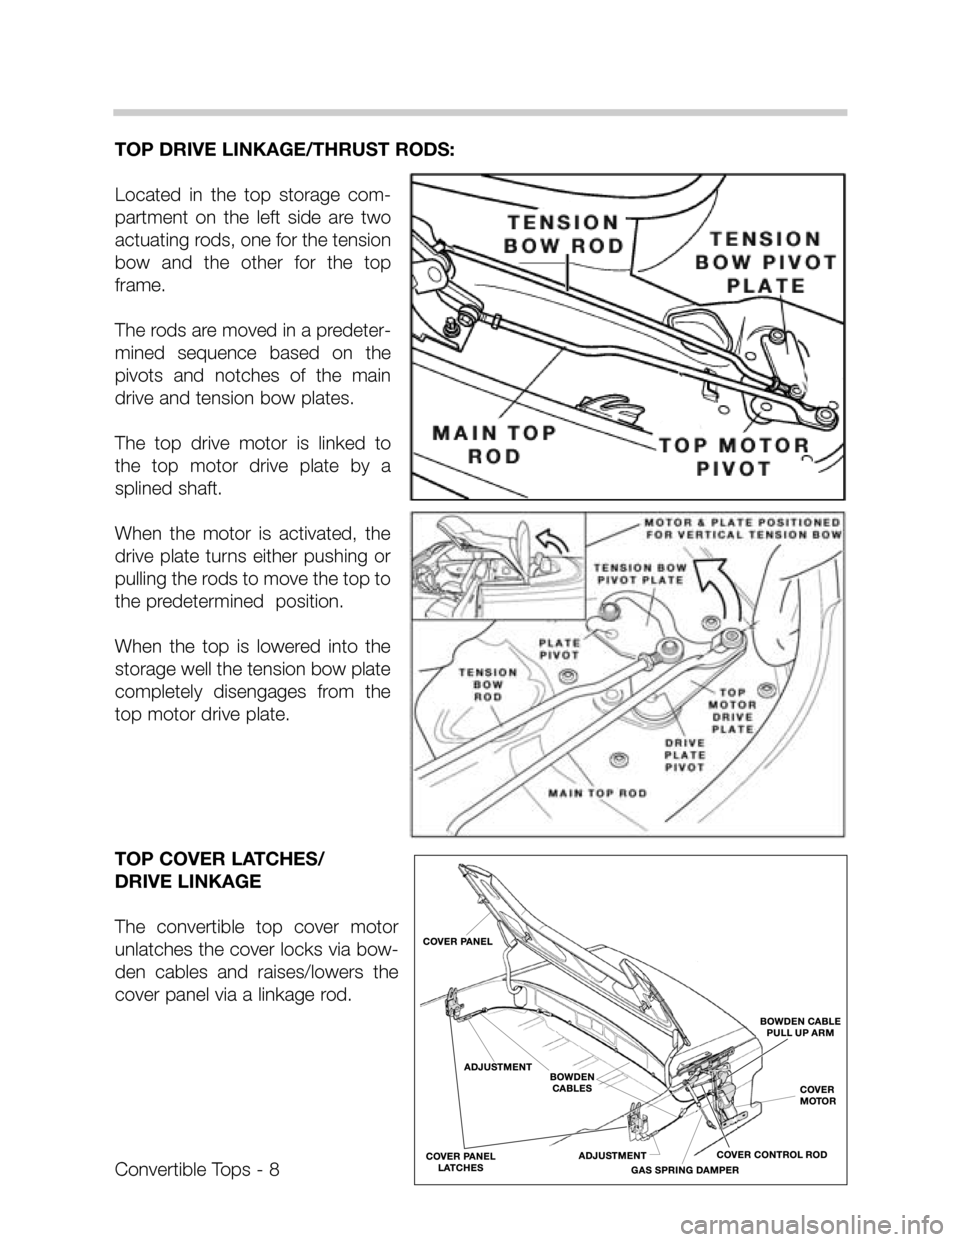 how to manually close bmw convertible top